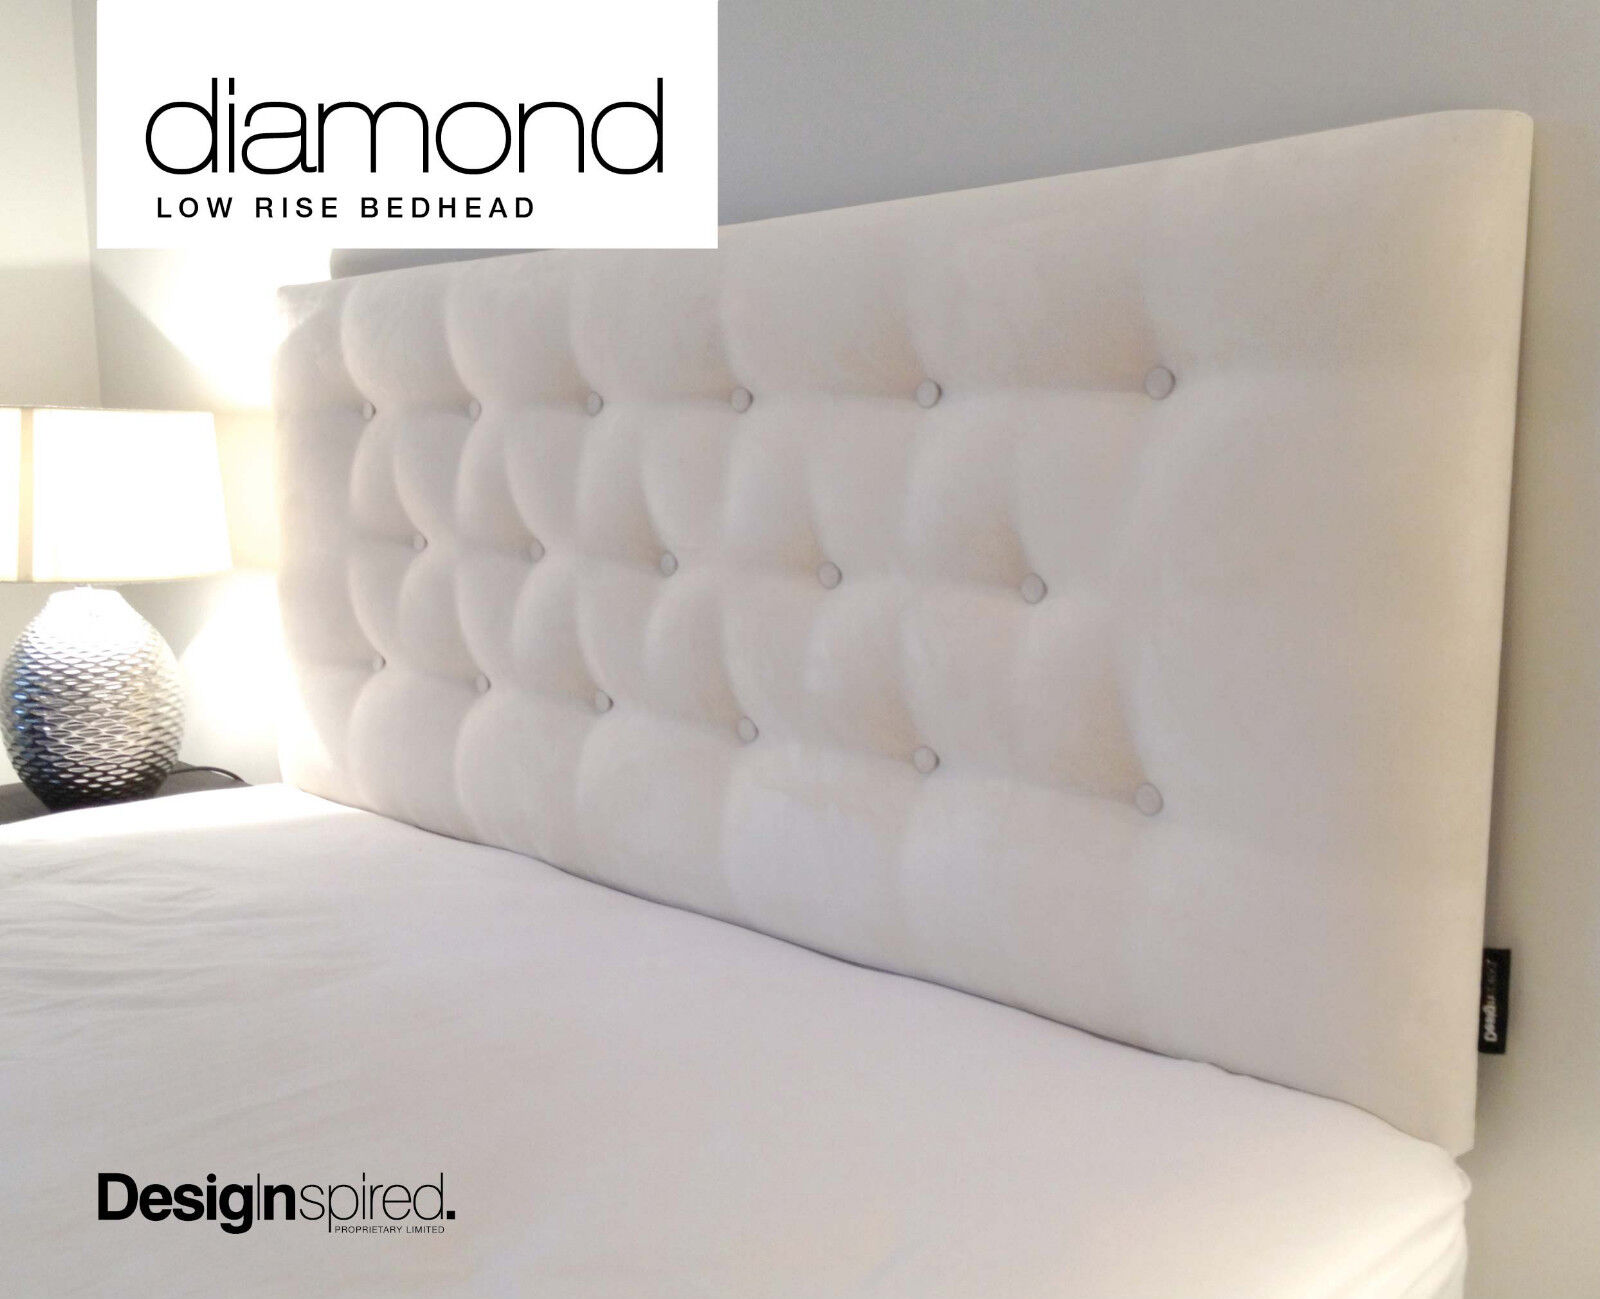 Upholstered Bed Head Diamond Low Rise Upholstered Bedhead Headboard For Queen